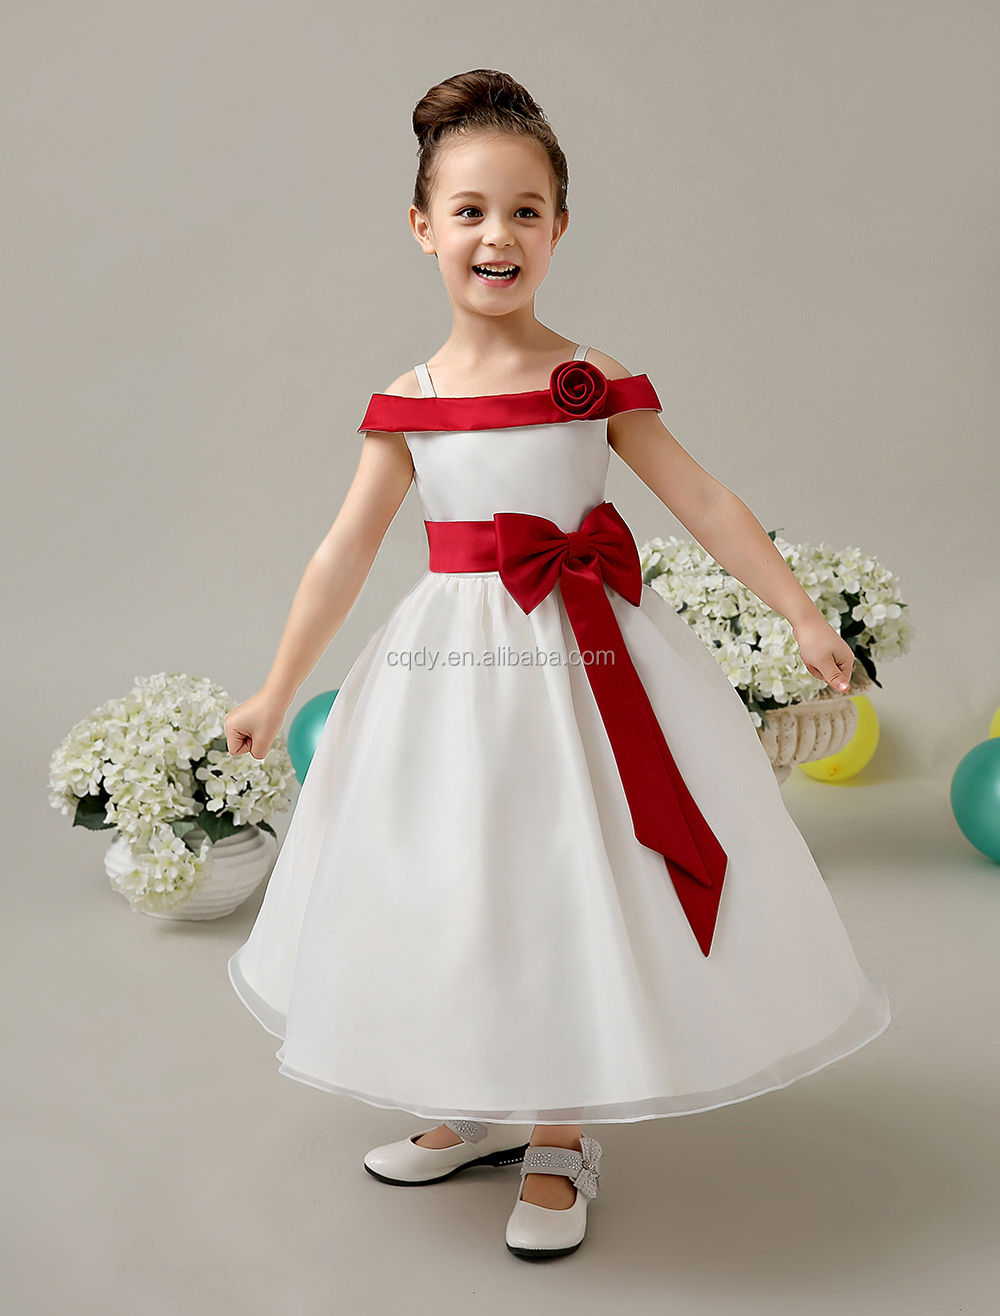 New Arrival 2015 Modern A Line Round Neck Long Flower Girl